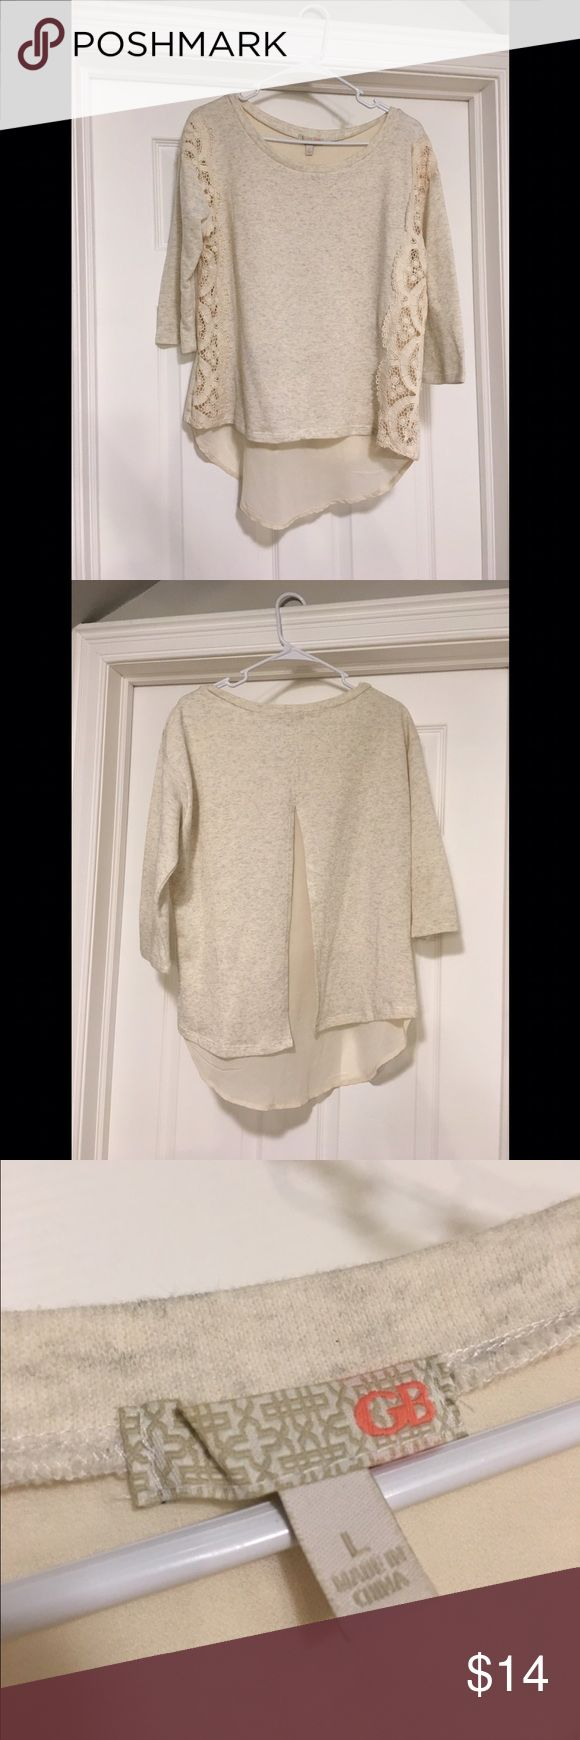 GB women's top Super cute GB women's top. Cream color. Size large. Never worn. Purchased from Dillard's. Tops